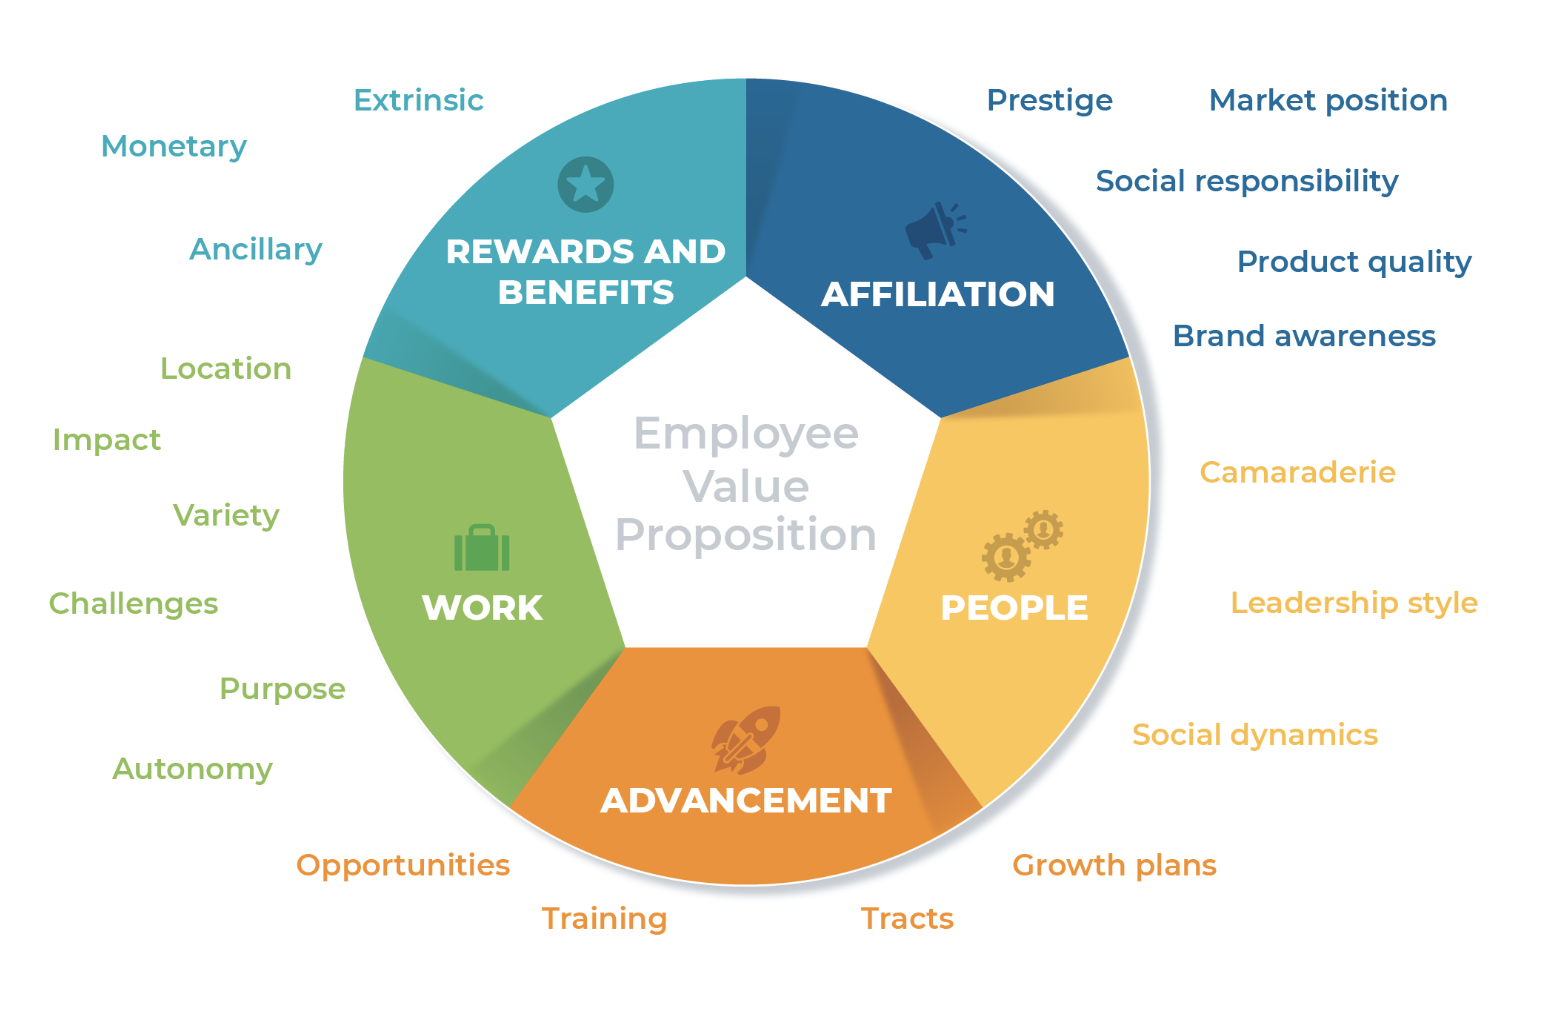 employee value proposition (EVP) in the workplace